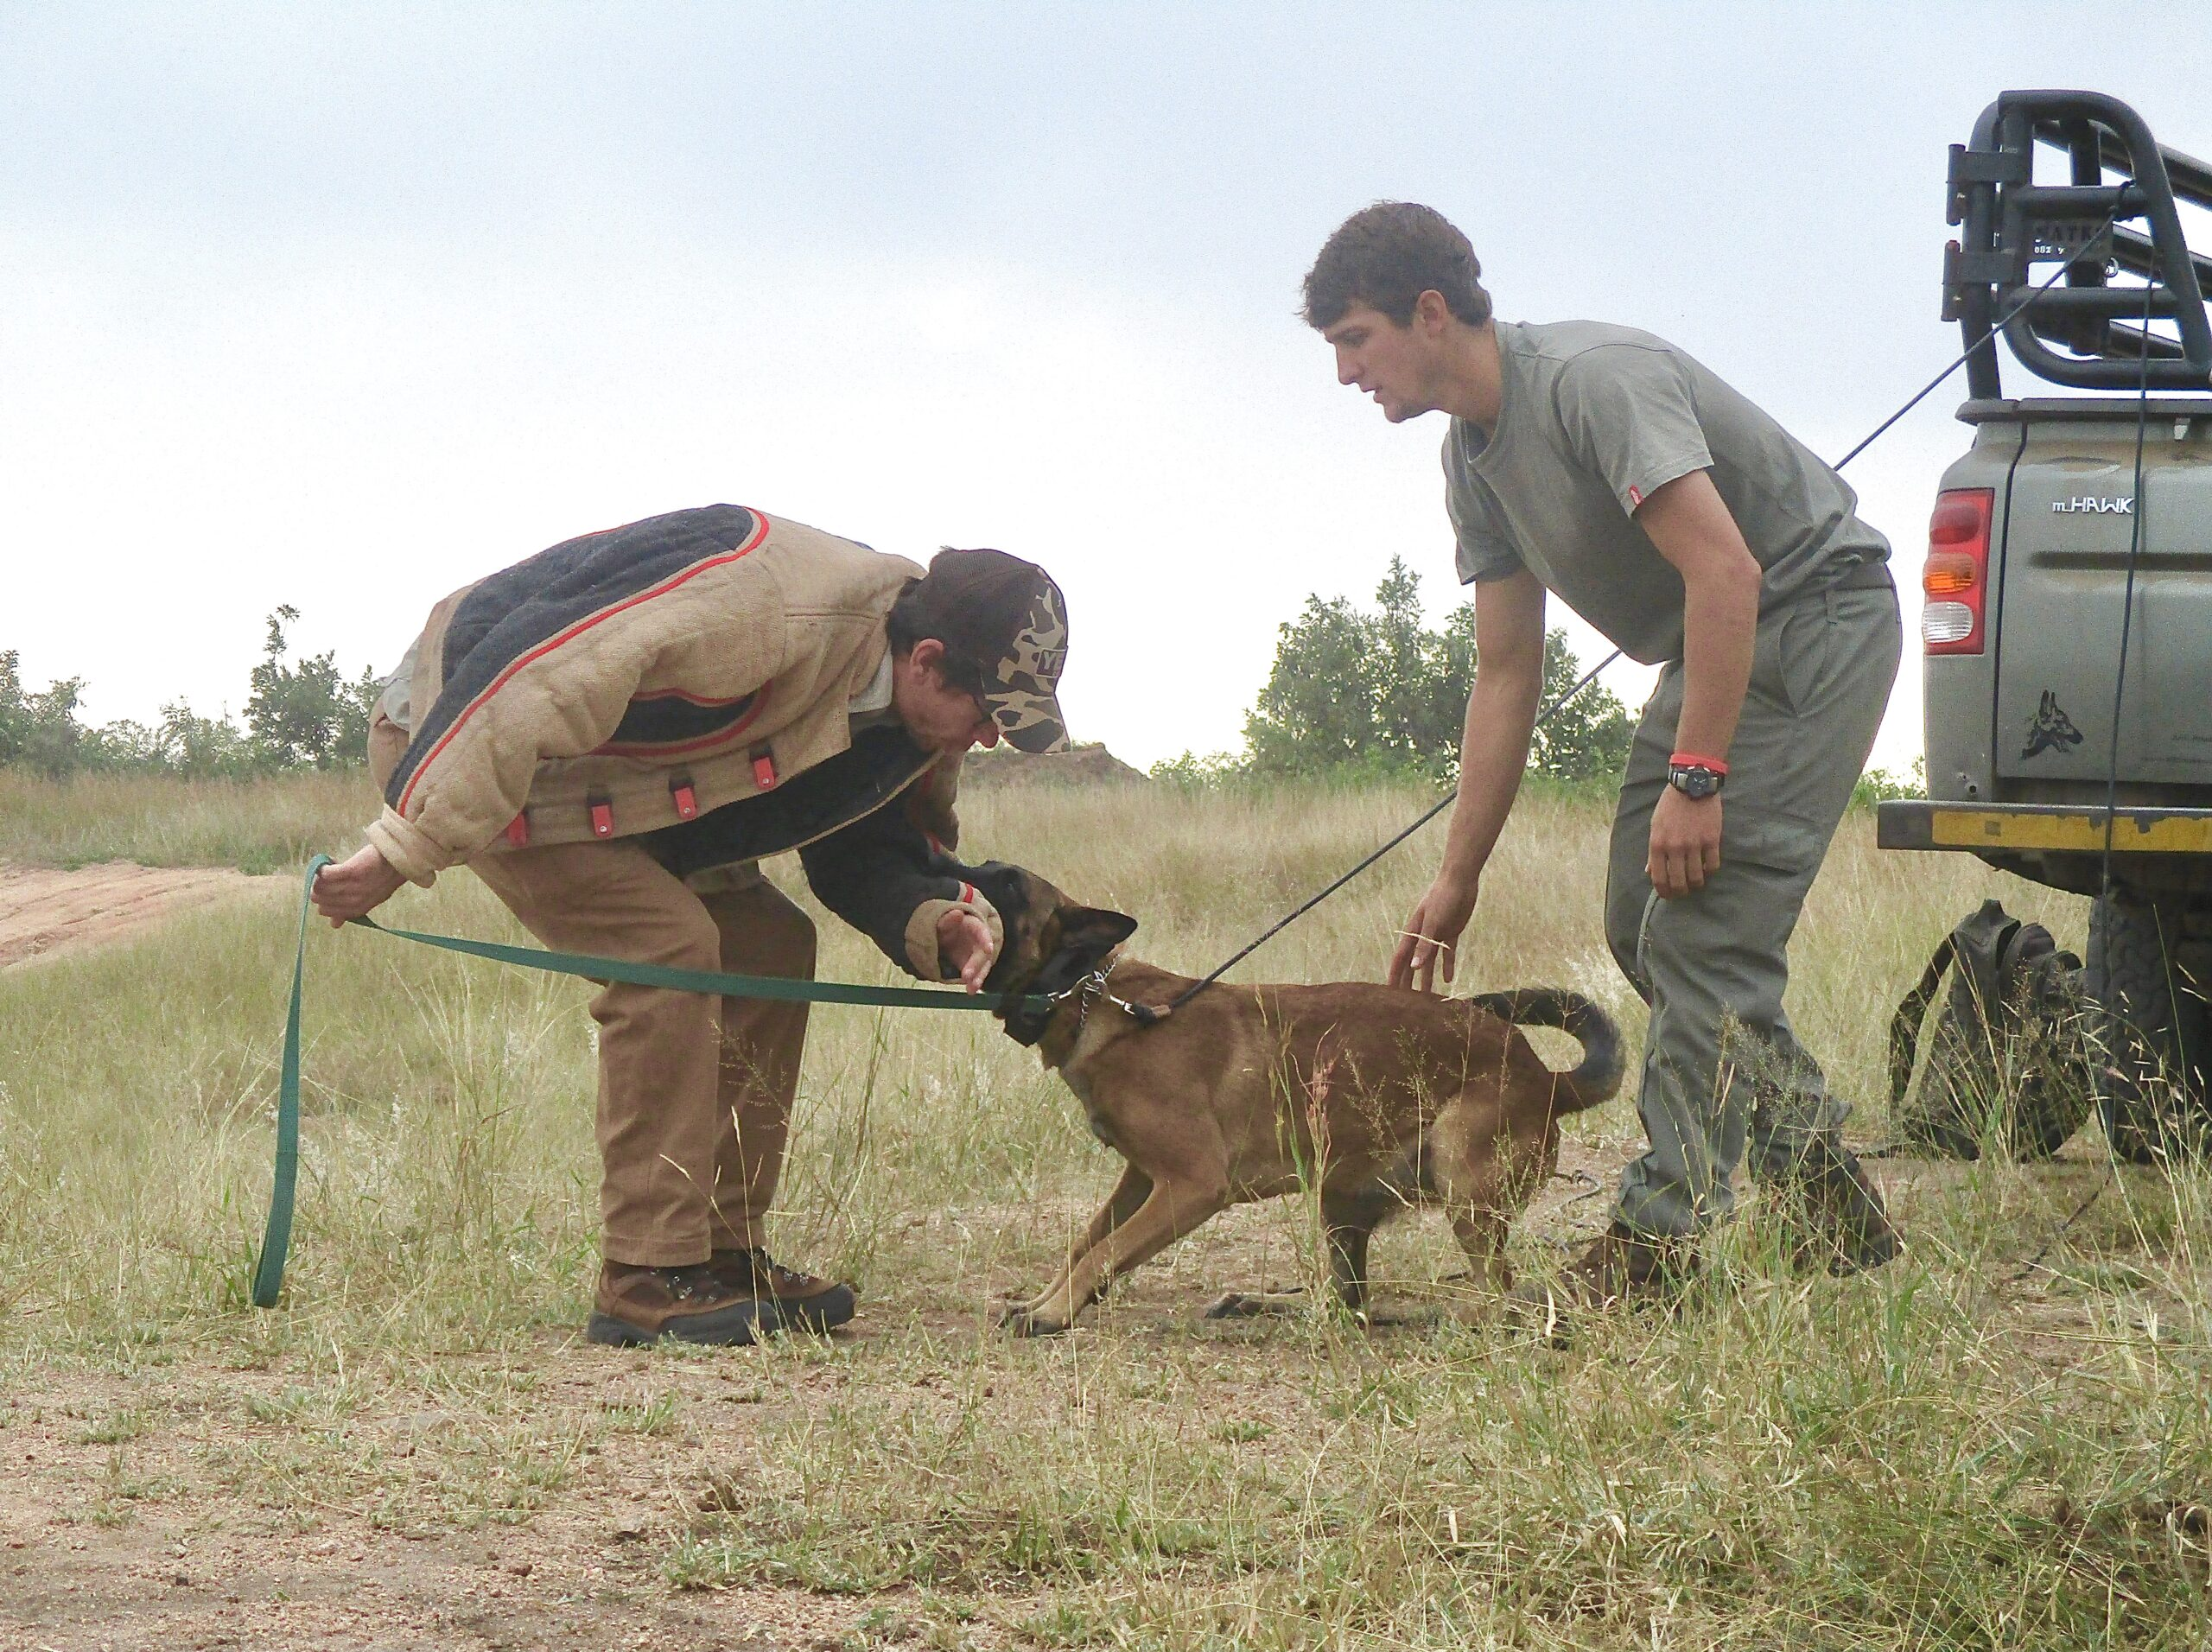 Malinois bite work south africa